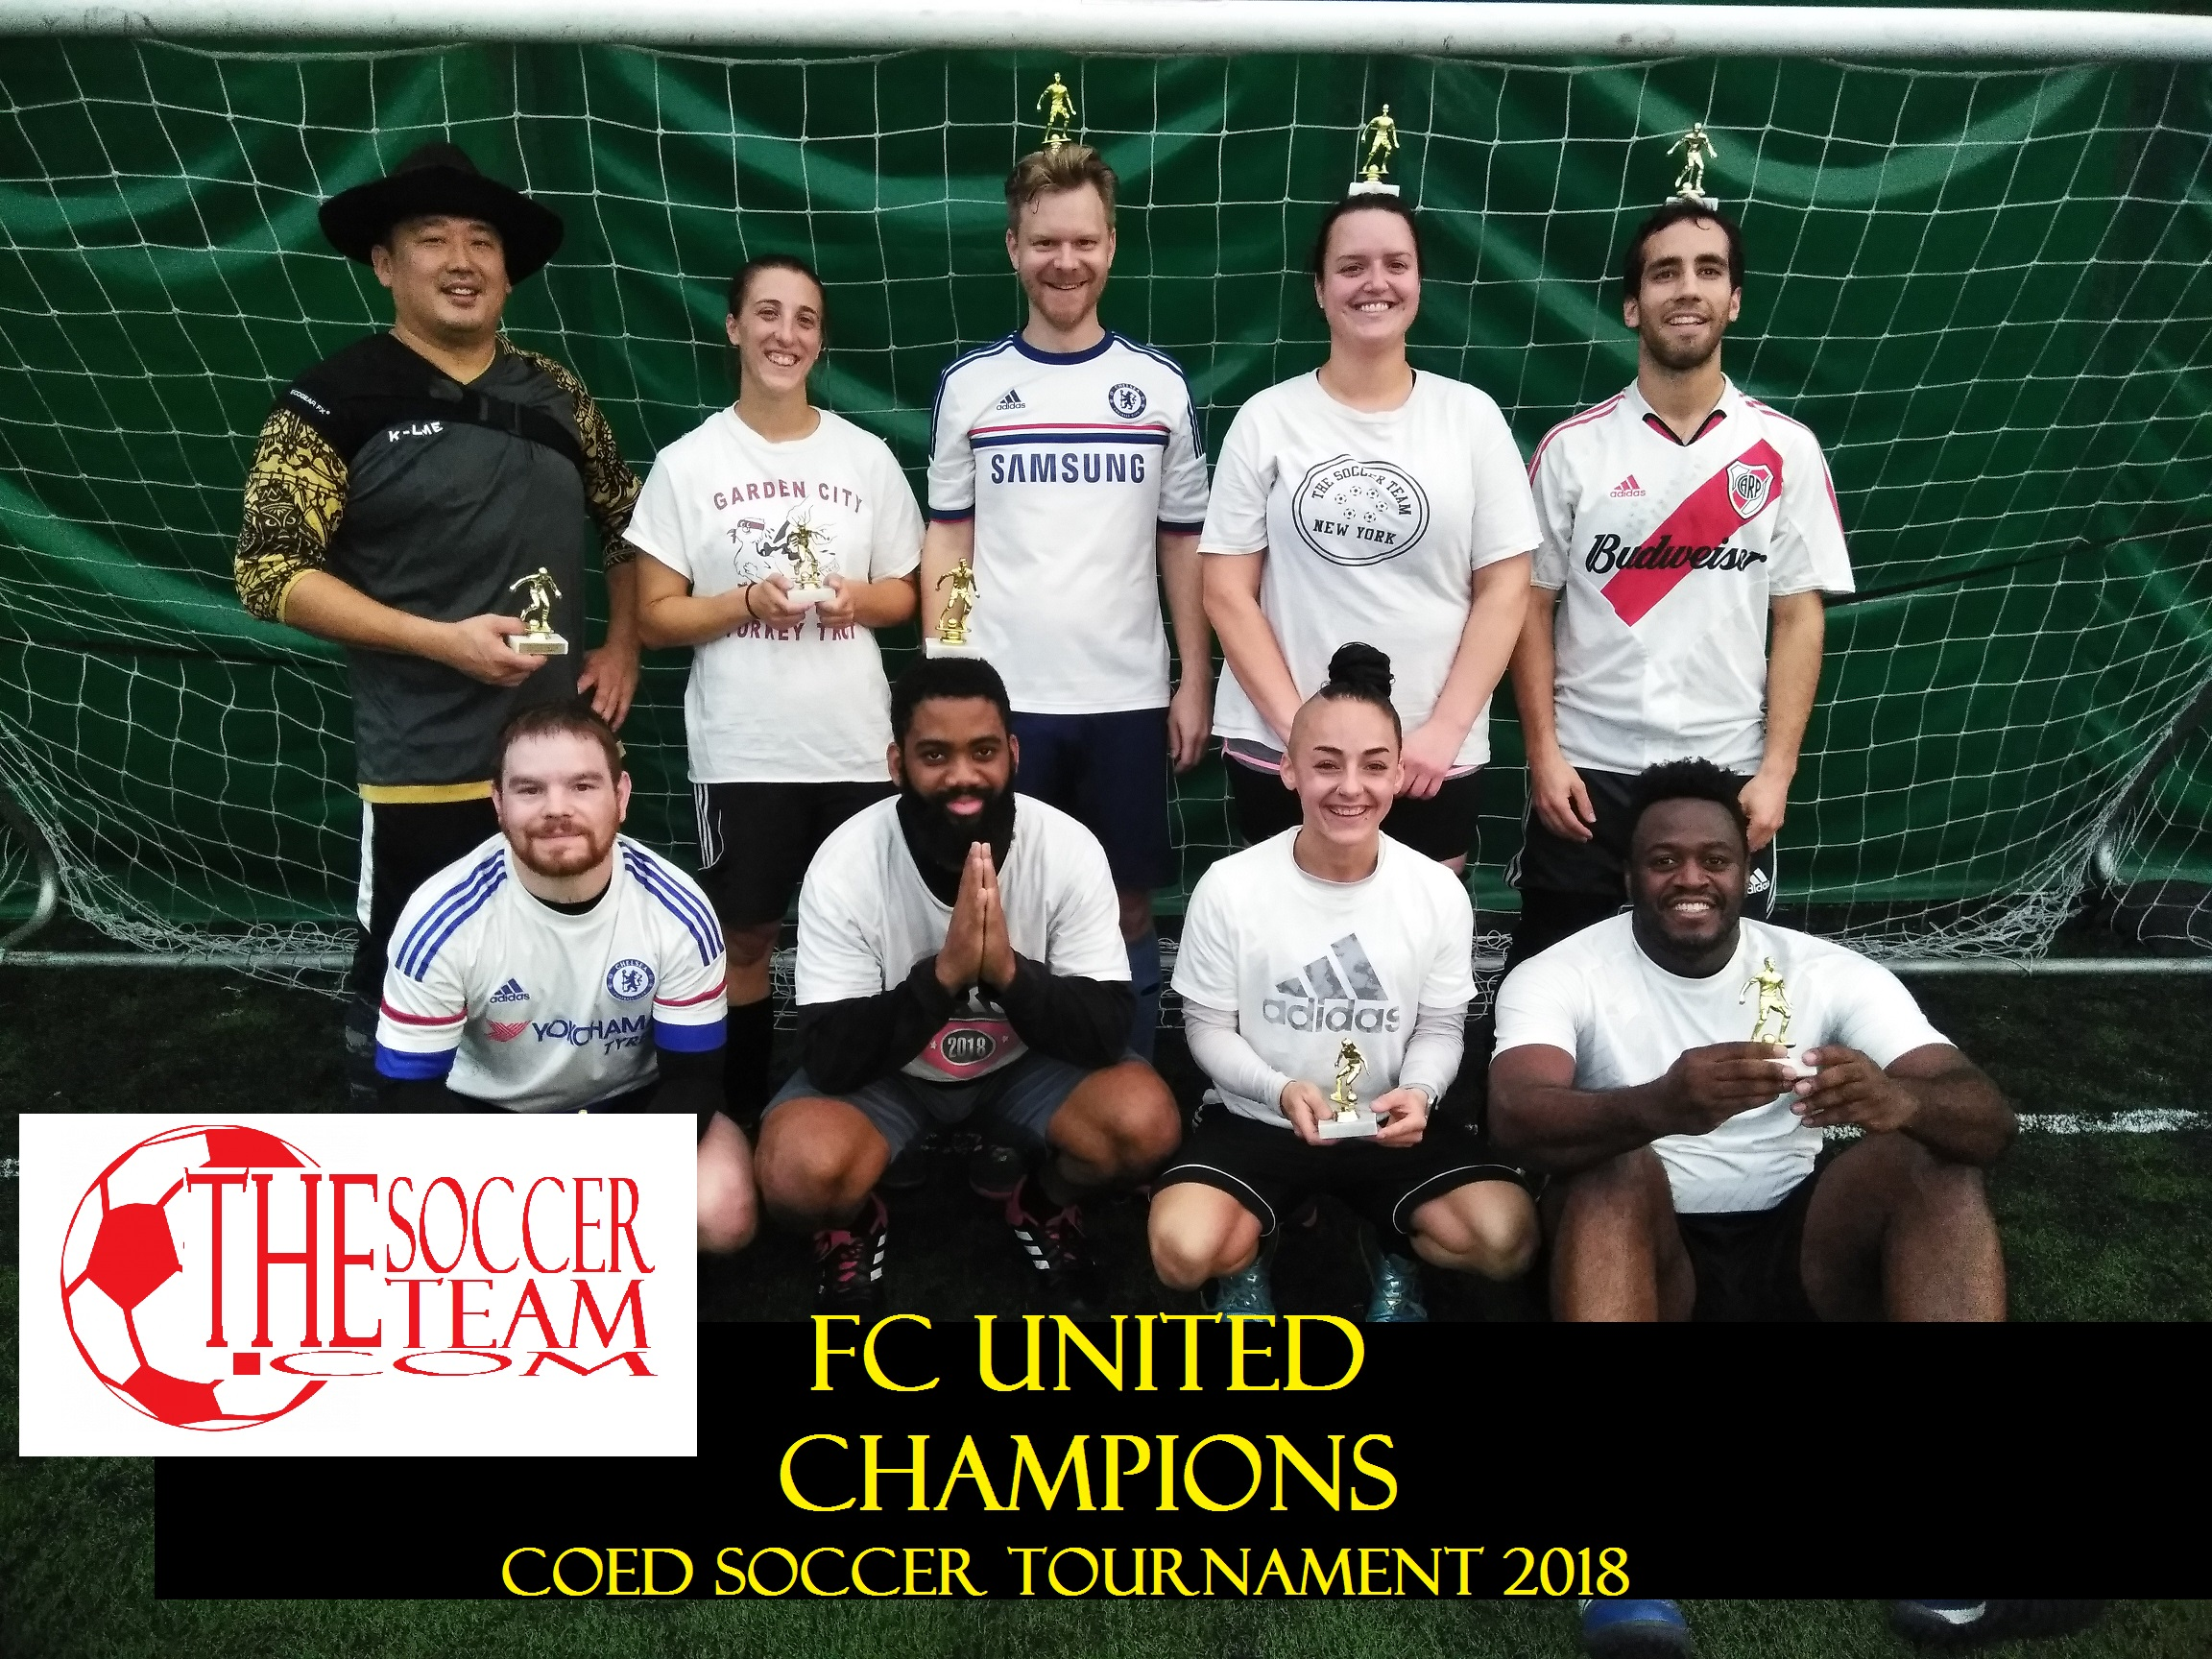 fc uinted champions